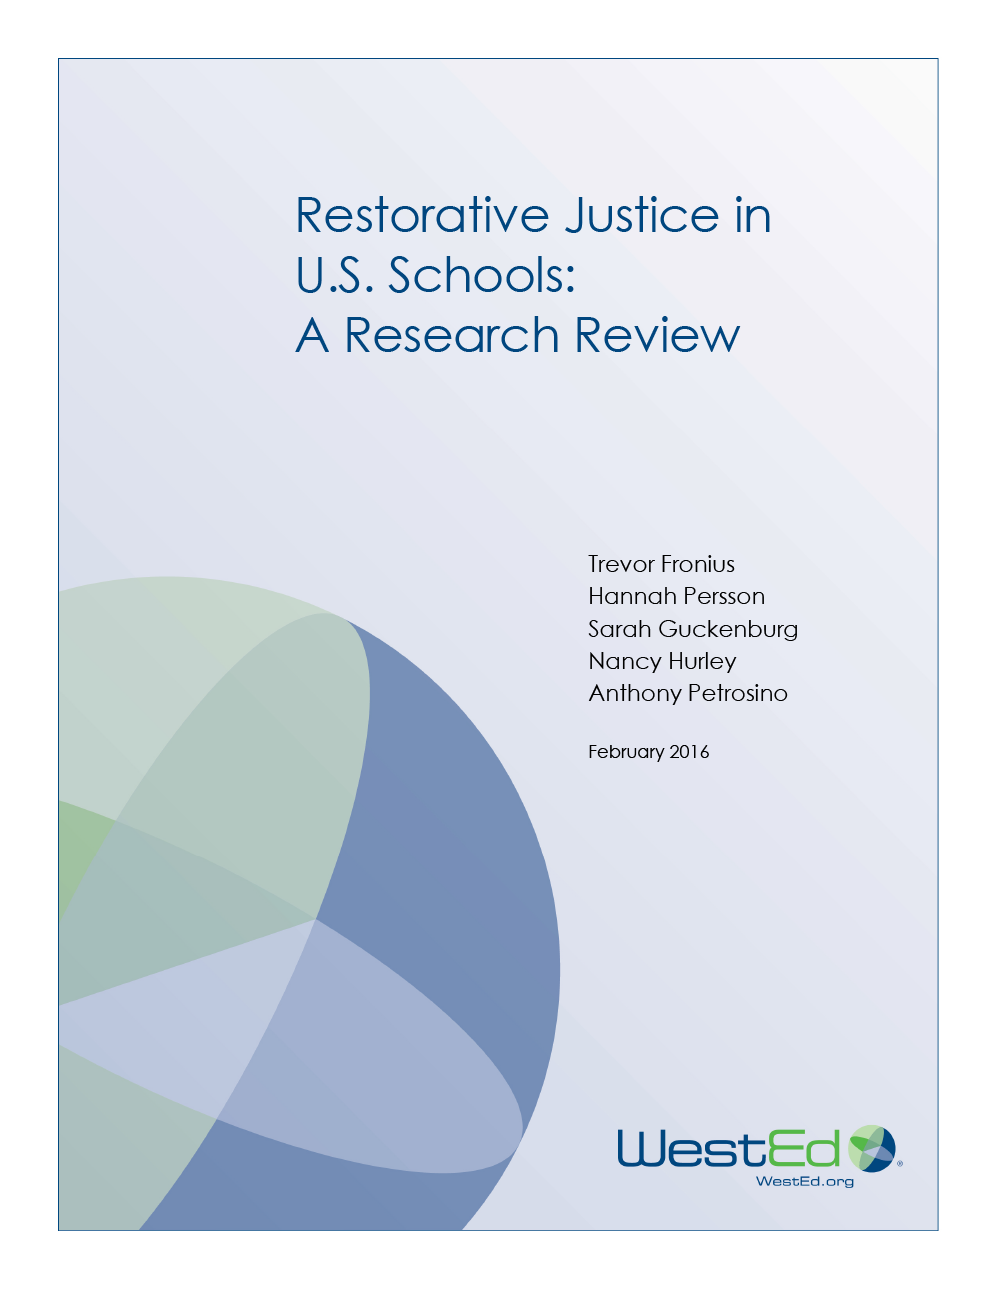 Why Restorative Practices Benefit All >> Restorative Justice In U S Schools A Research Review Wested